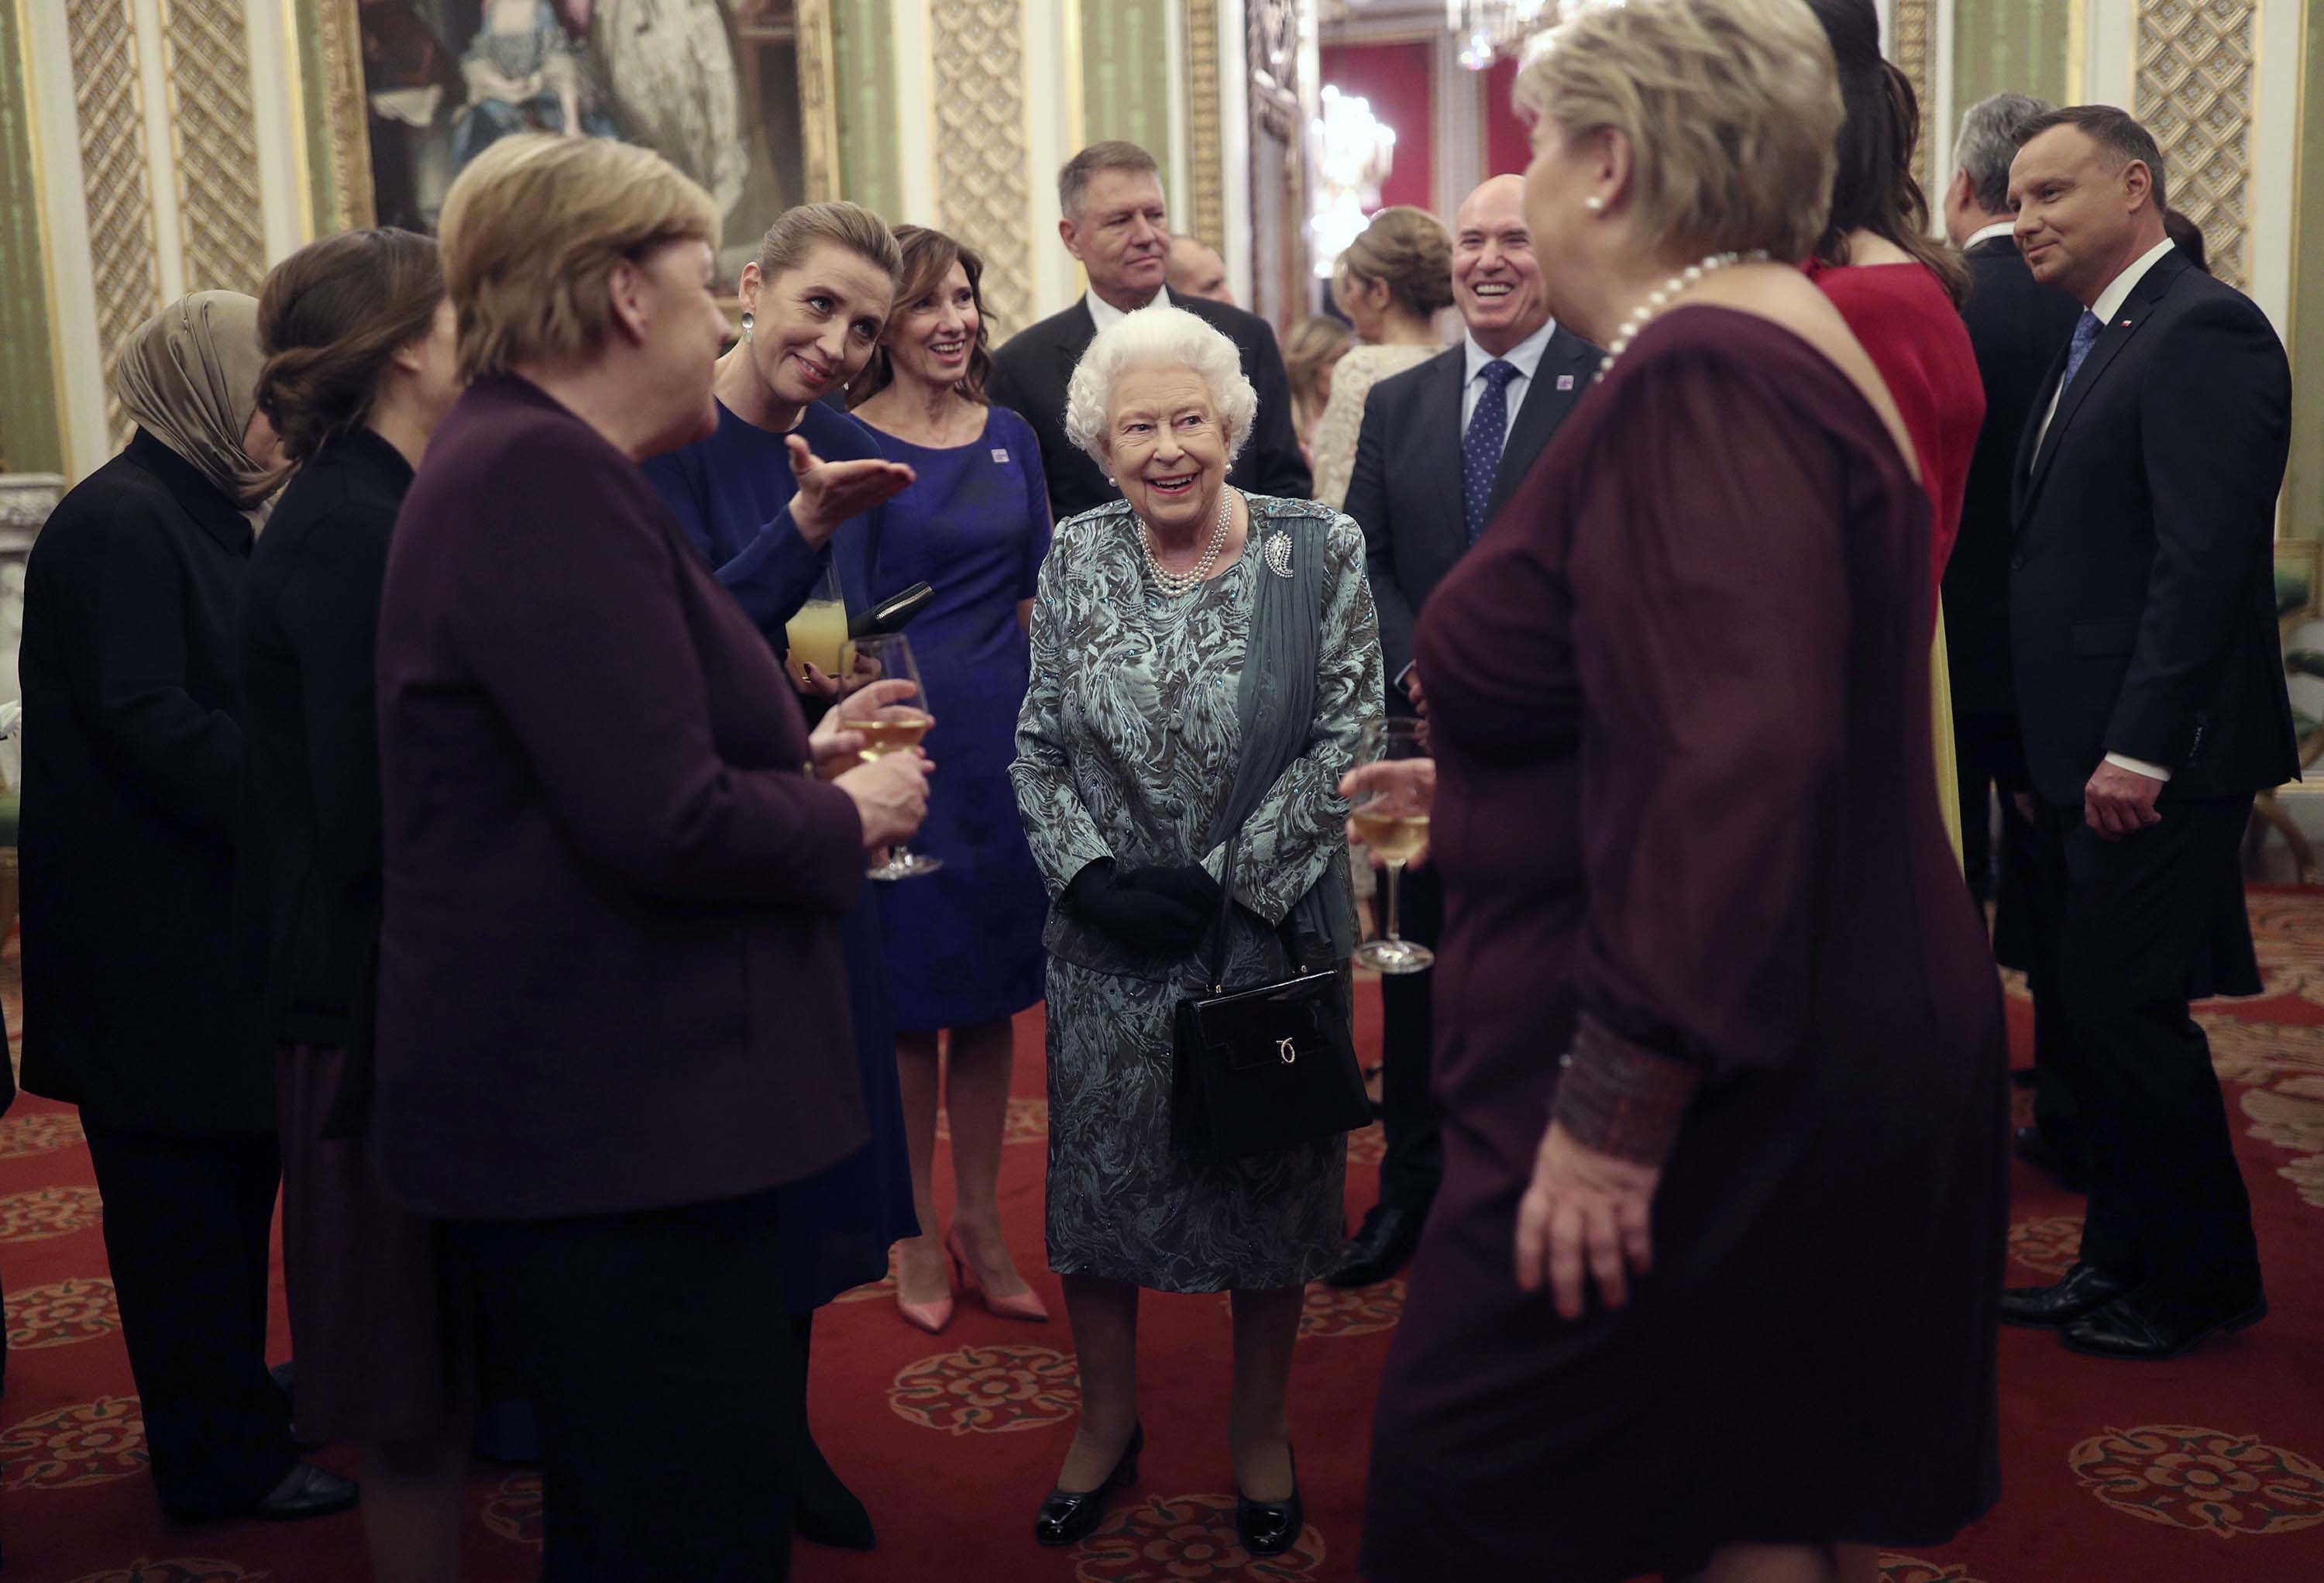 The British monarch talks to guests including German Chancellor Angela Merkel during the reception. Photo: Yui Mok/Pool via AP